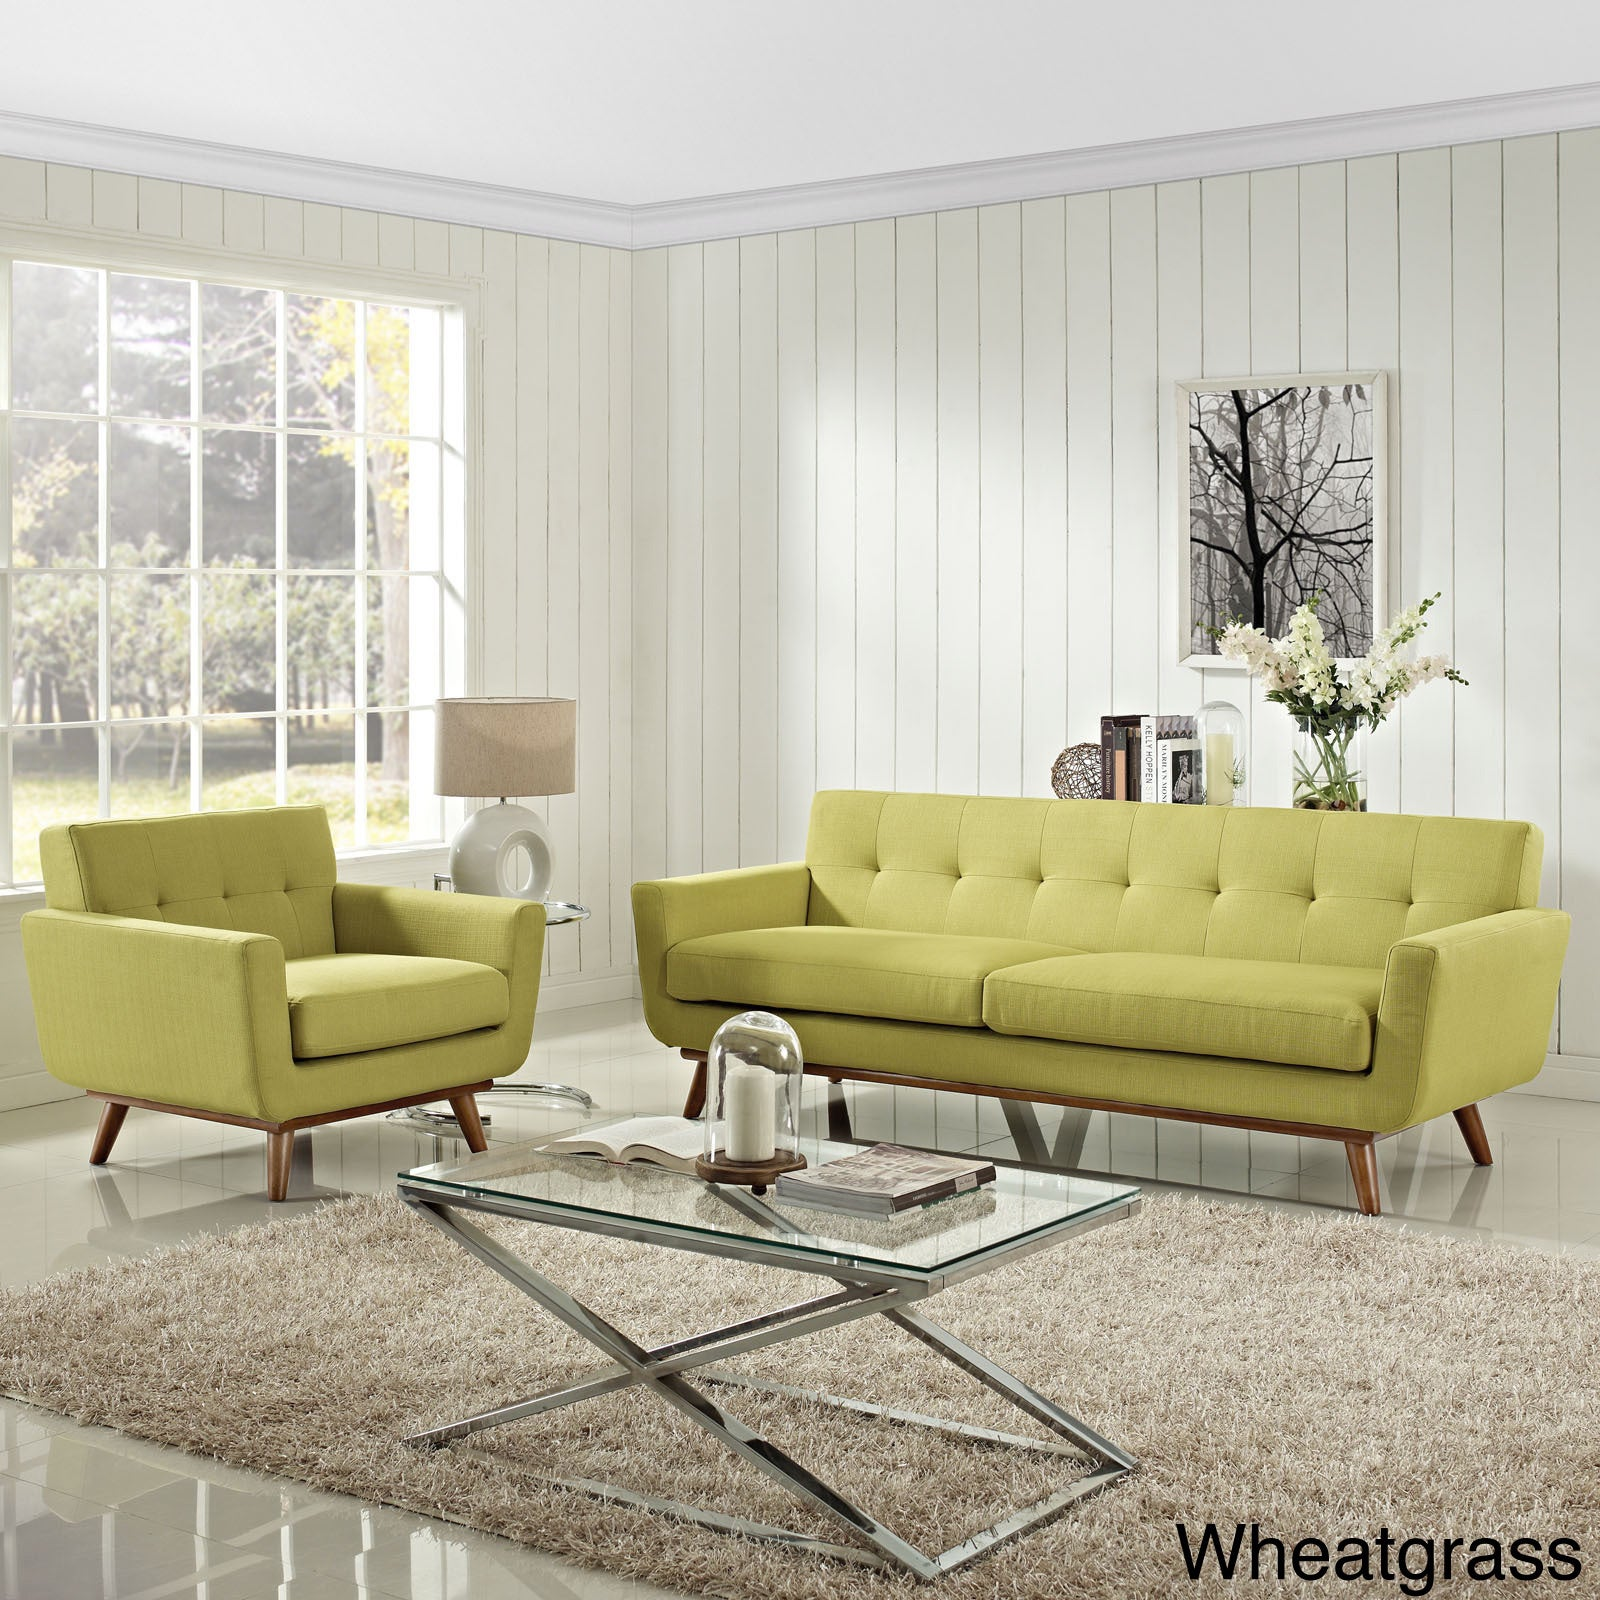 Engage 2 Piece Tufted Armchair And Sofa Set   Free Shipping Today    Overstock.com   16147998